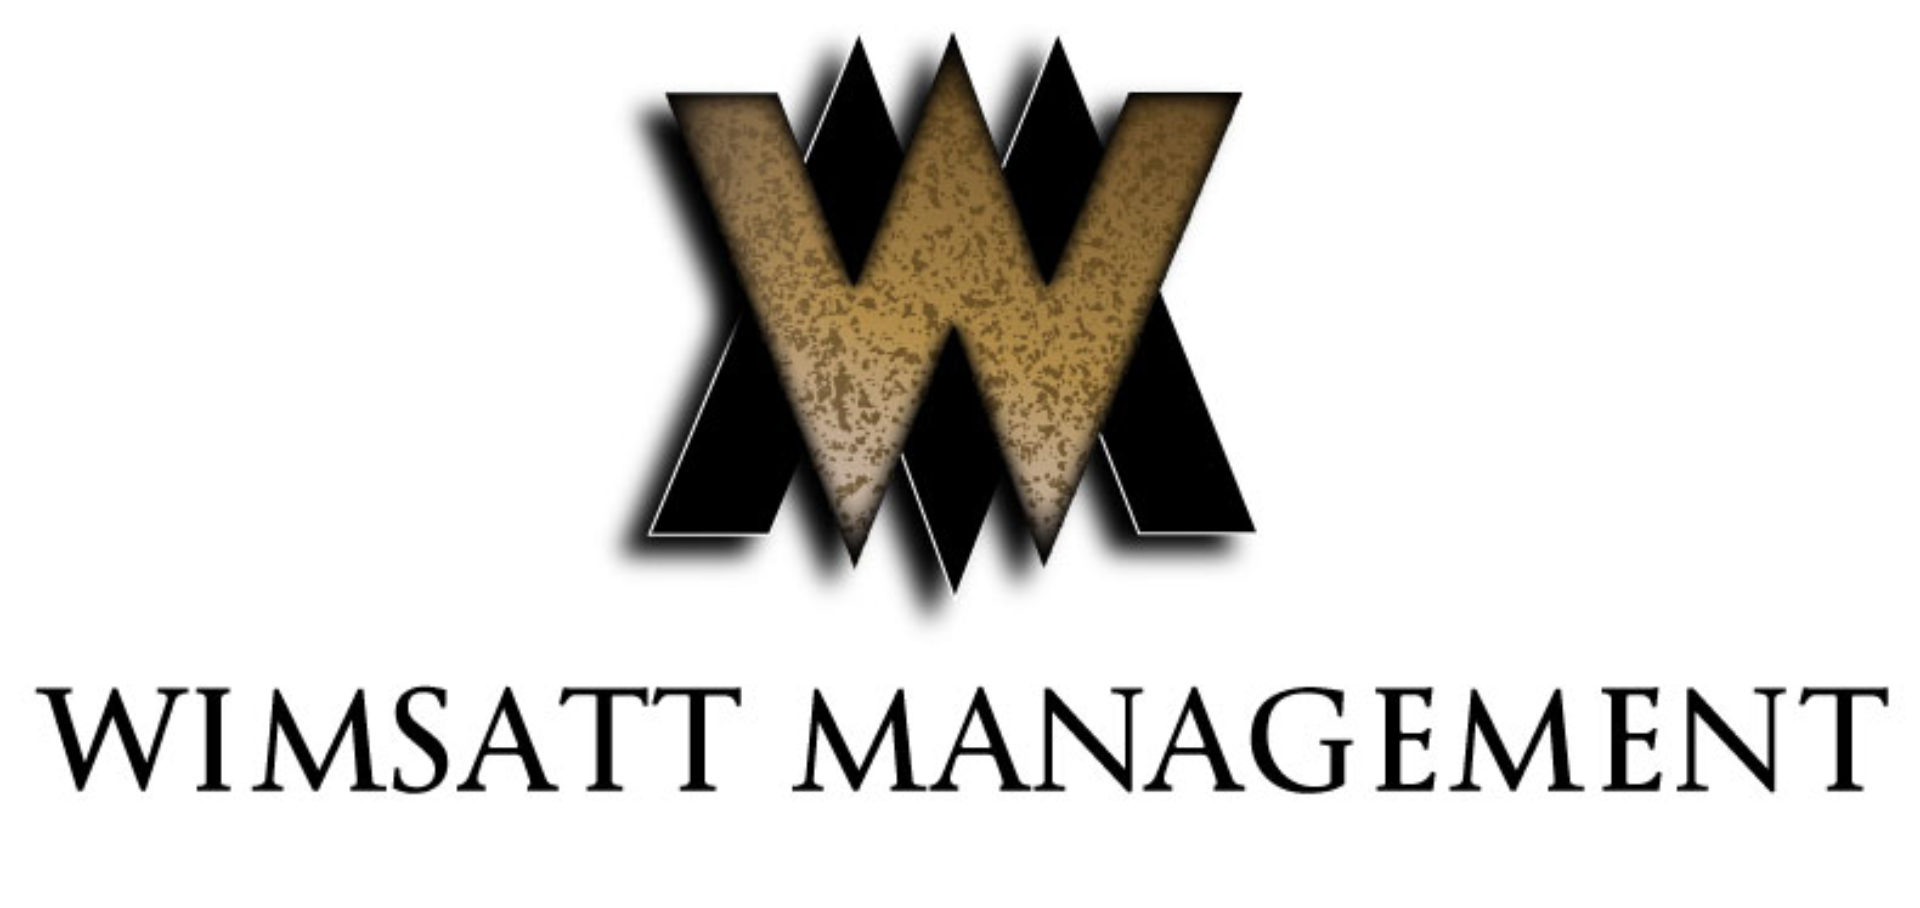 Wimsatt Management